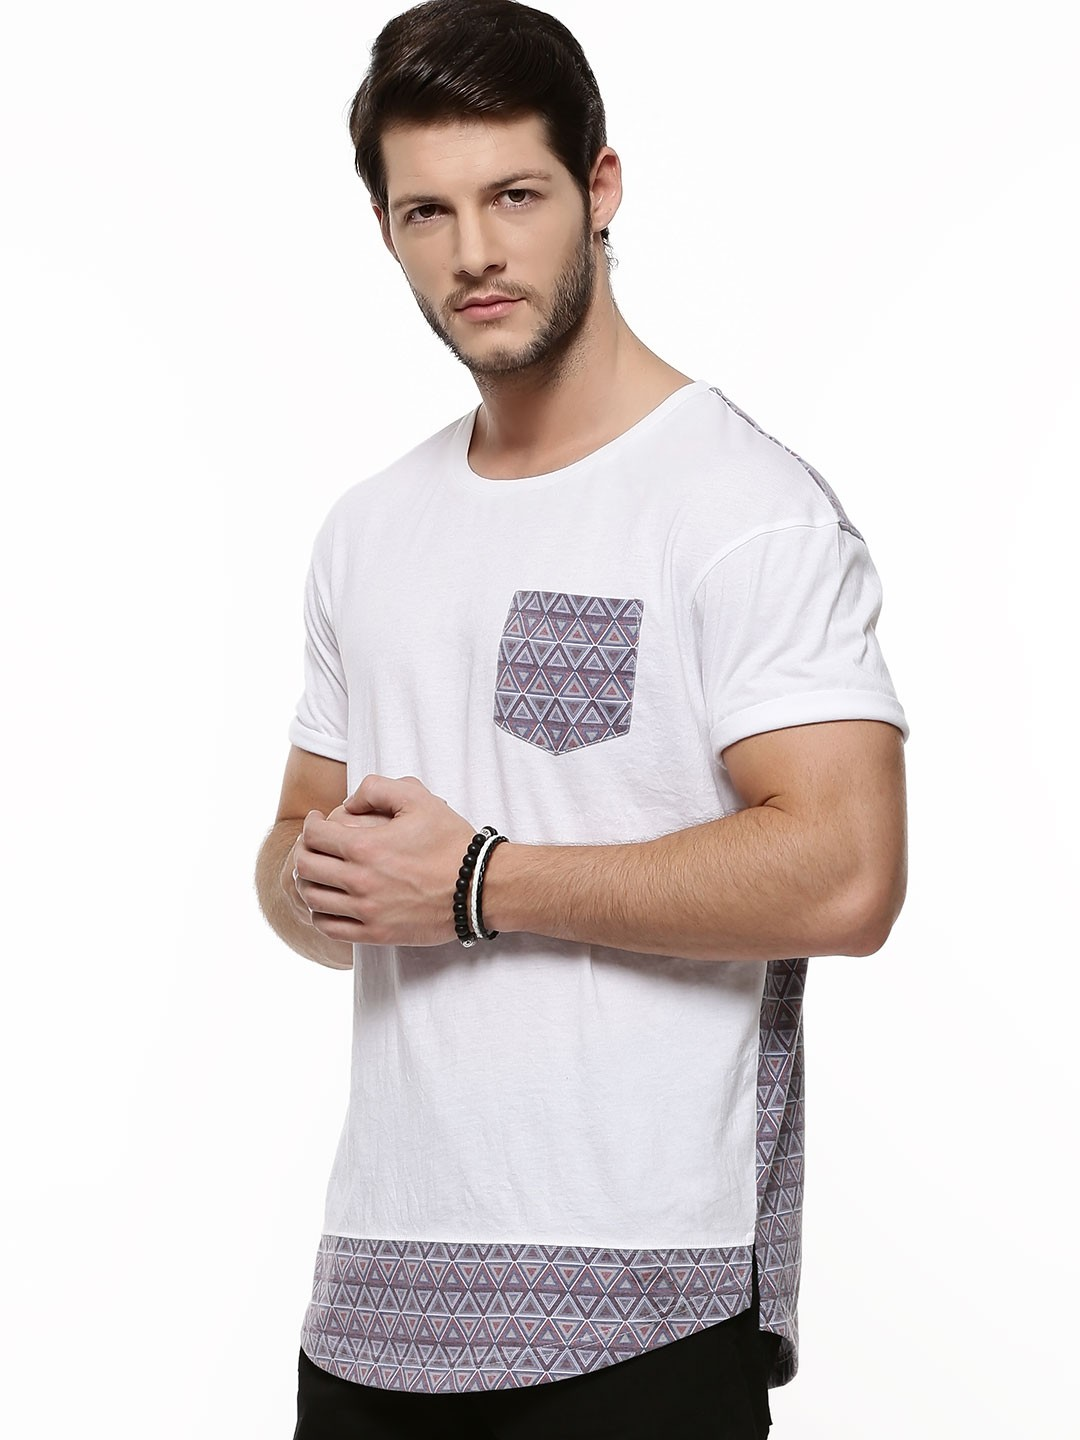 Printed T Shirts Buy Online Artee Shirt